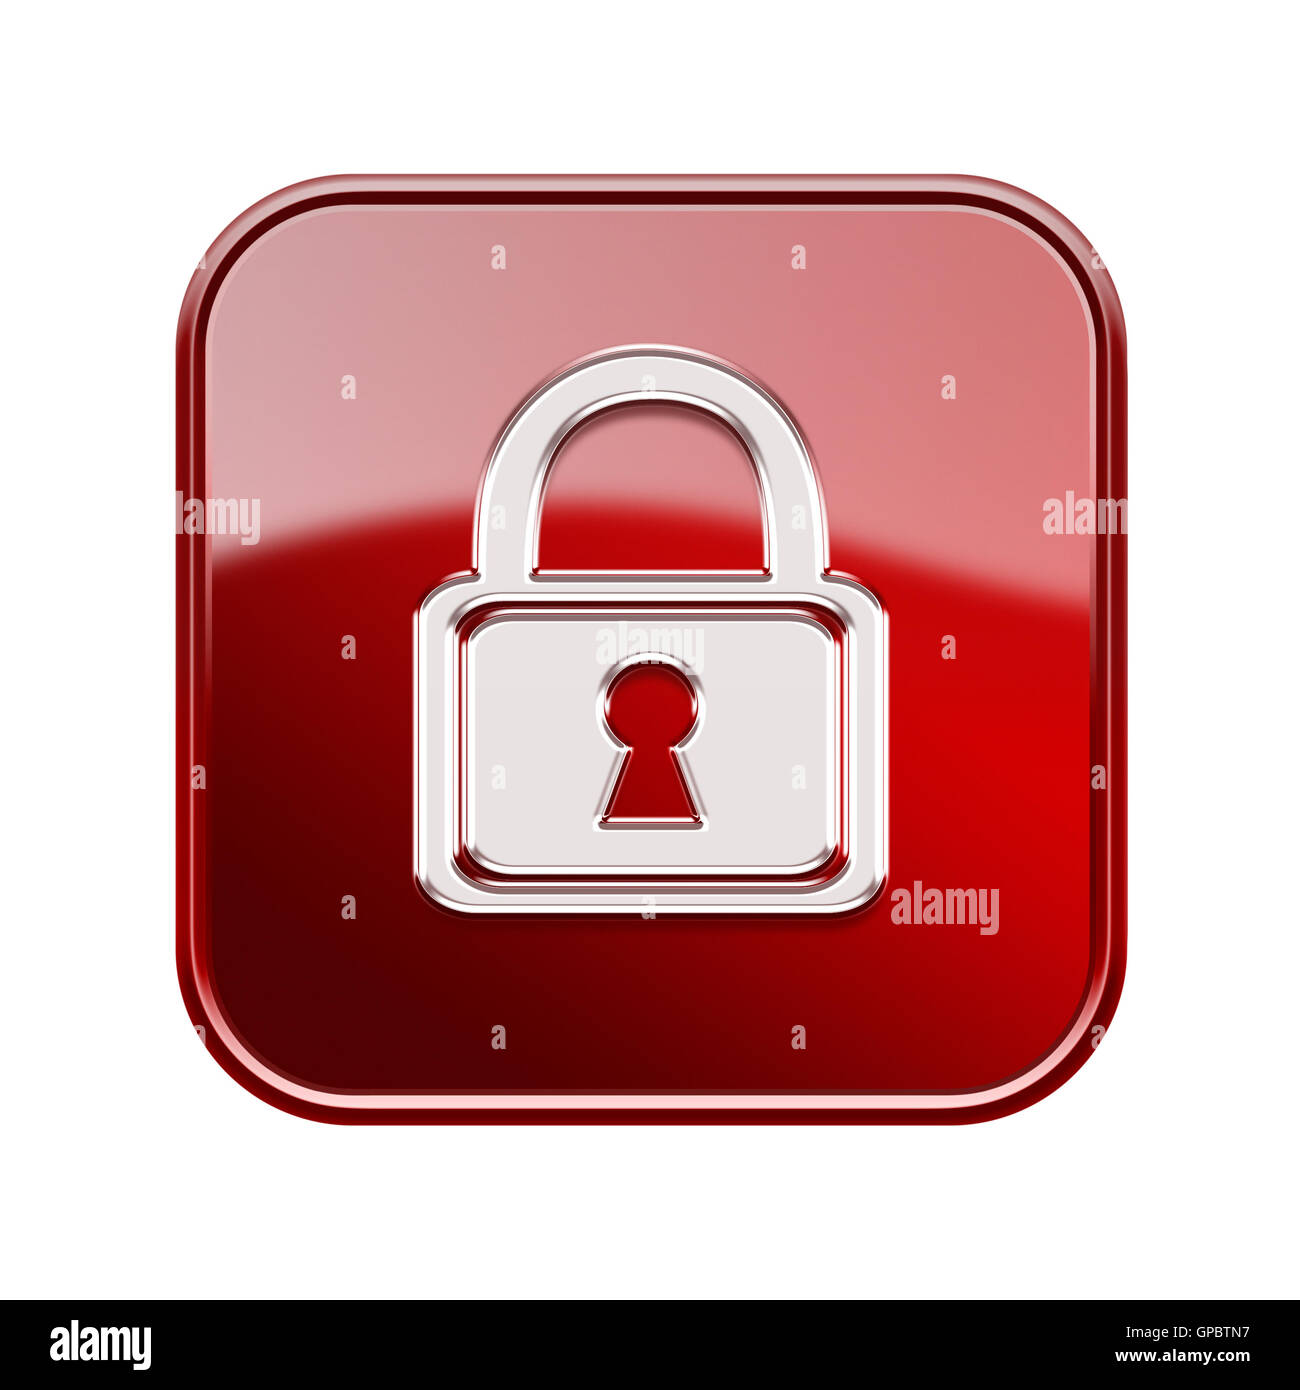 Lock icon glossy red, isolated on white background - Stock Image